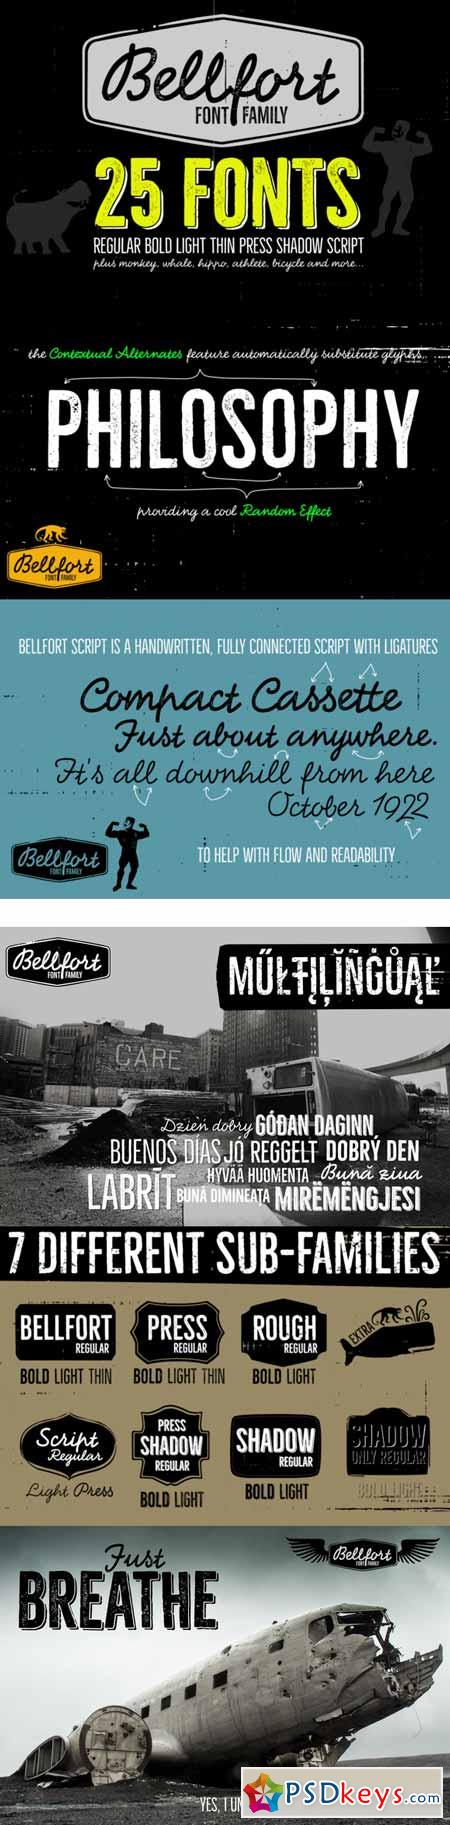 Bellfort family - 25 fonts 458033